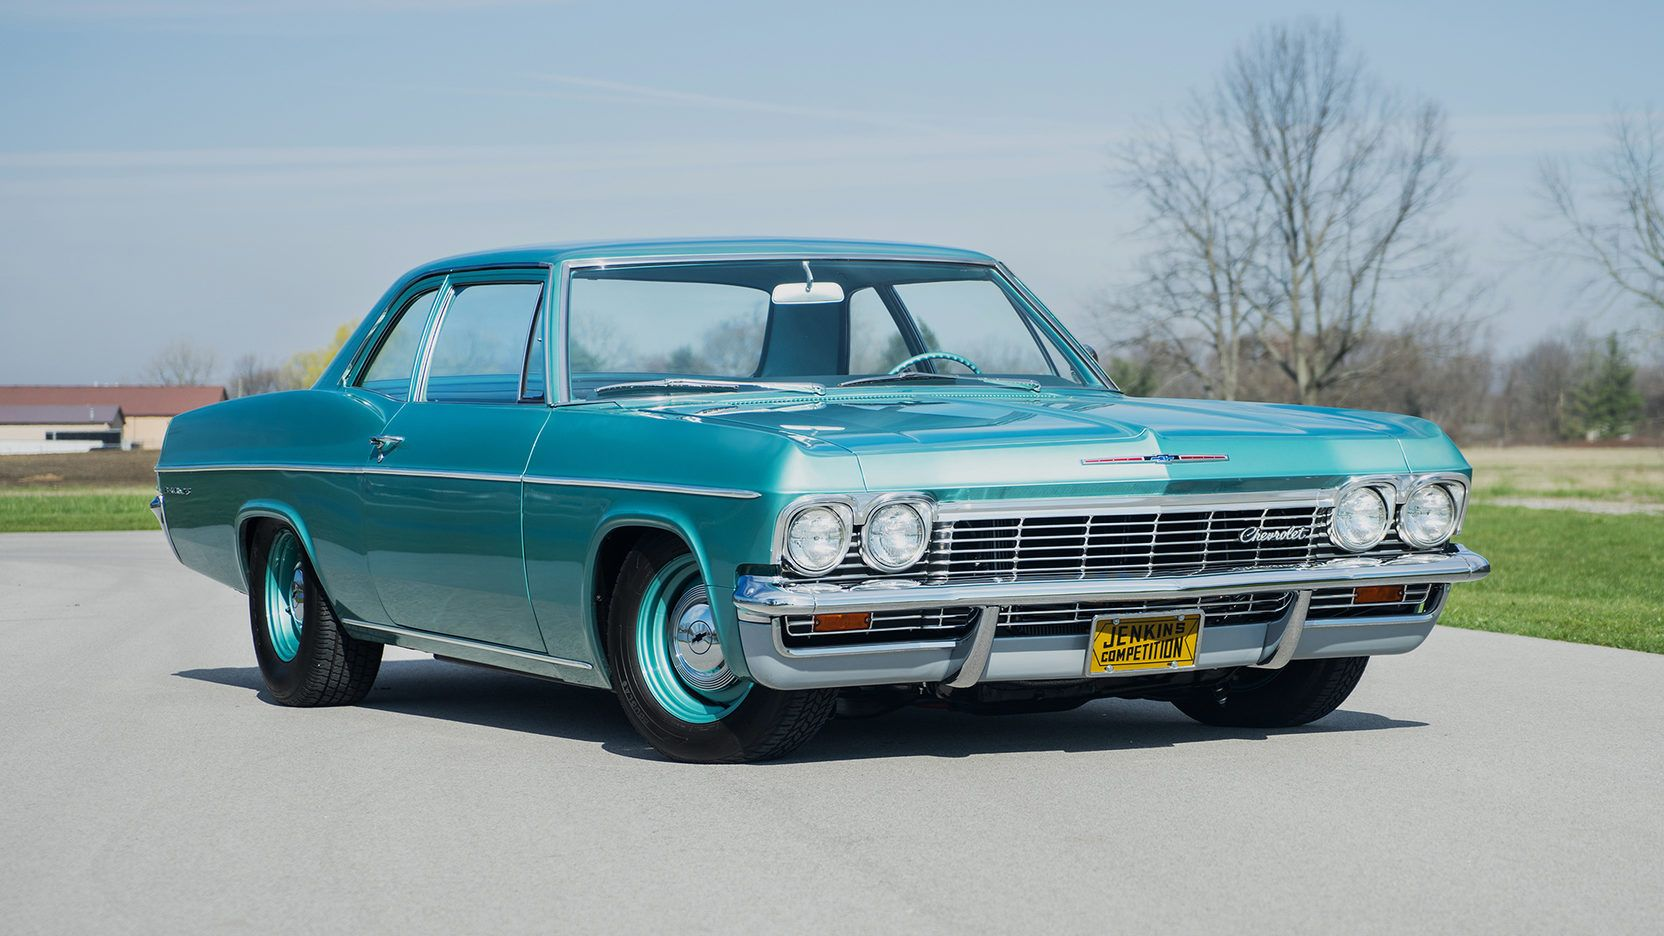 1961 chevrolet biscayne bel air impala 5 speed for sale photos technical specifications description biscayne 61 pinterest impalas bel air and